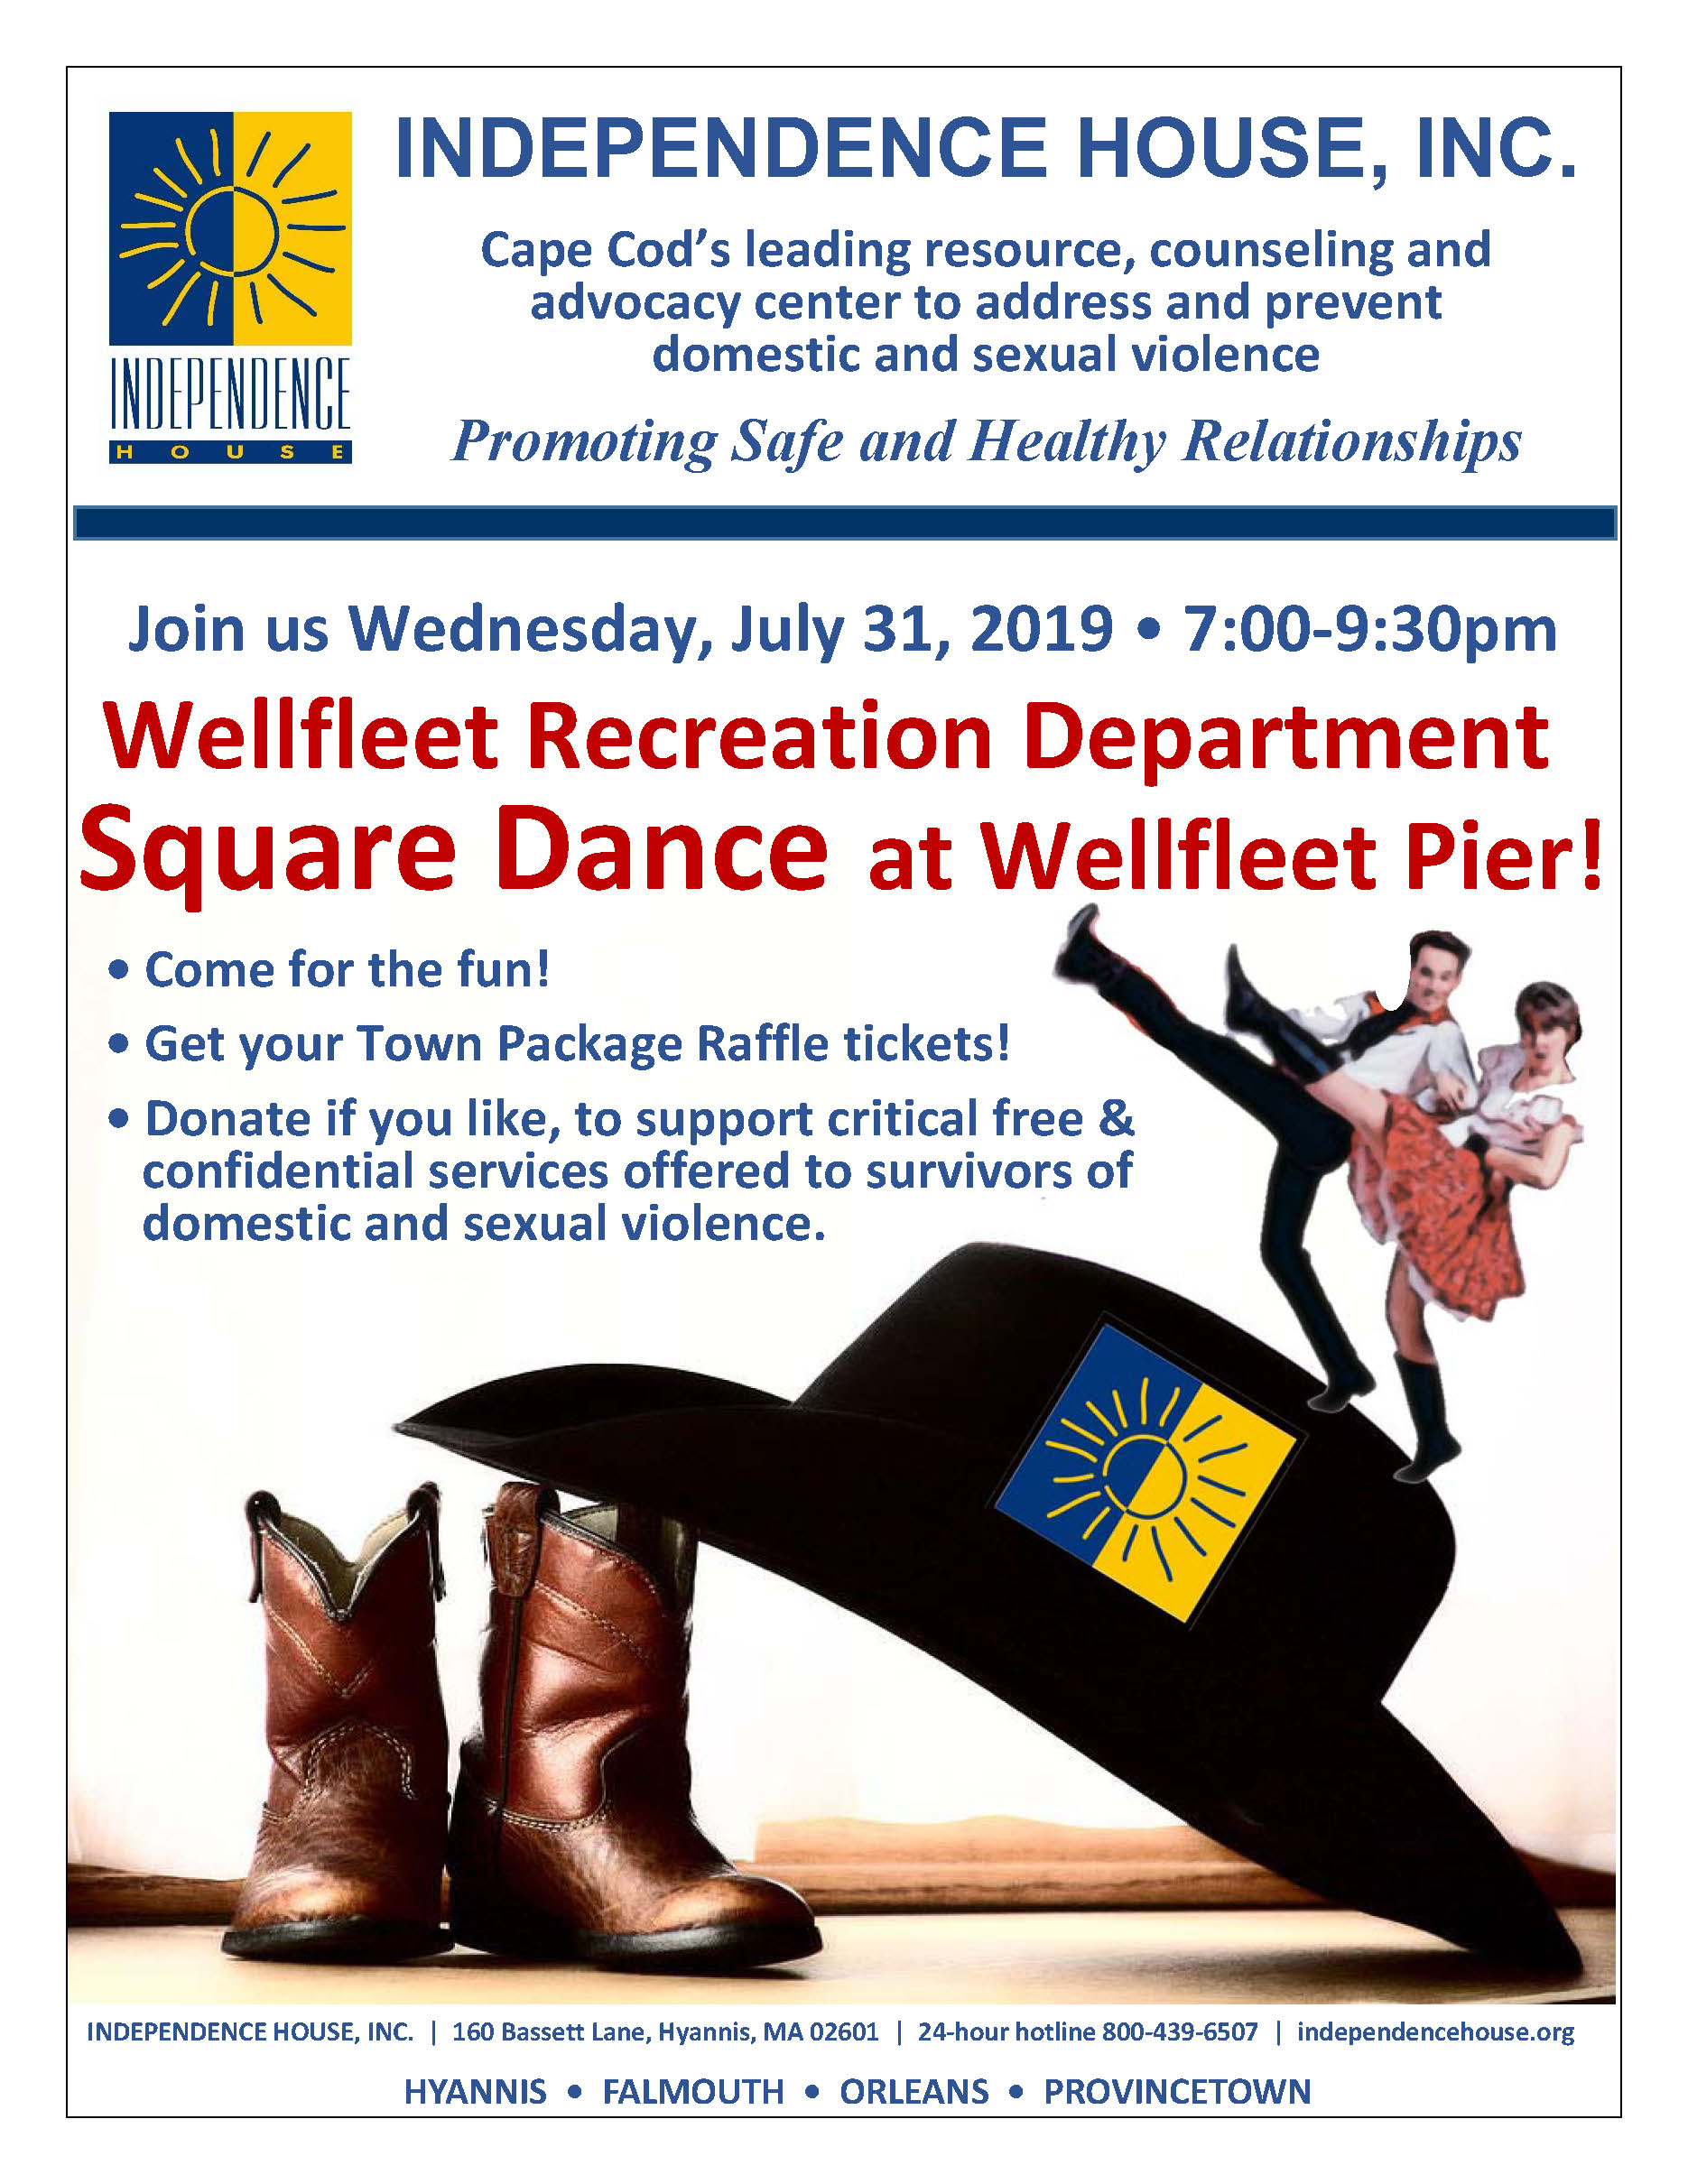 Square Dance with Independence House at the Wellfleet Pier @ Wellfleet Pier